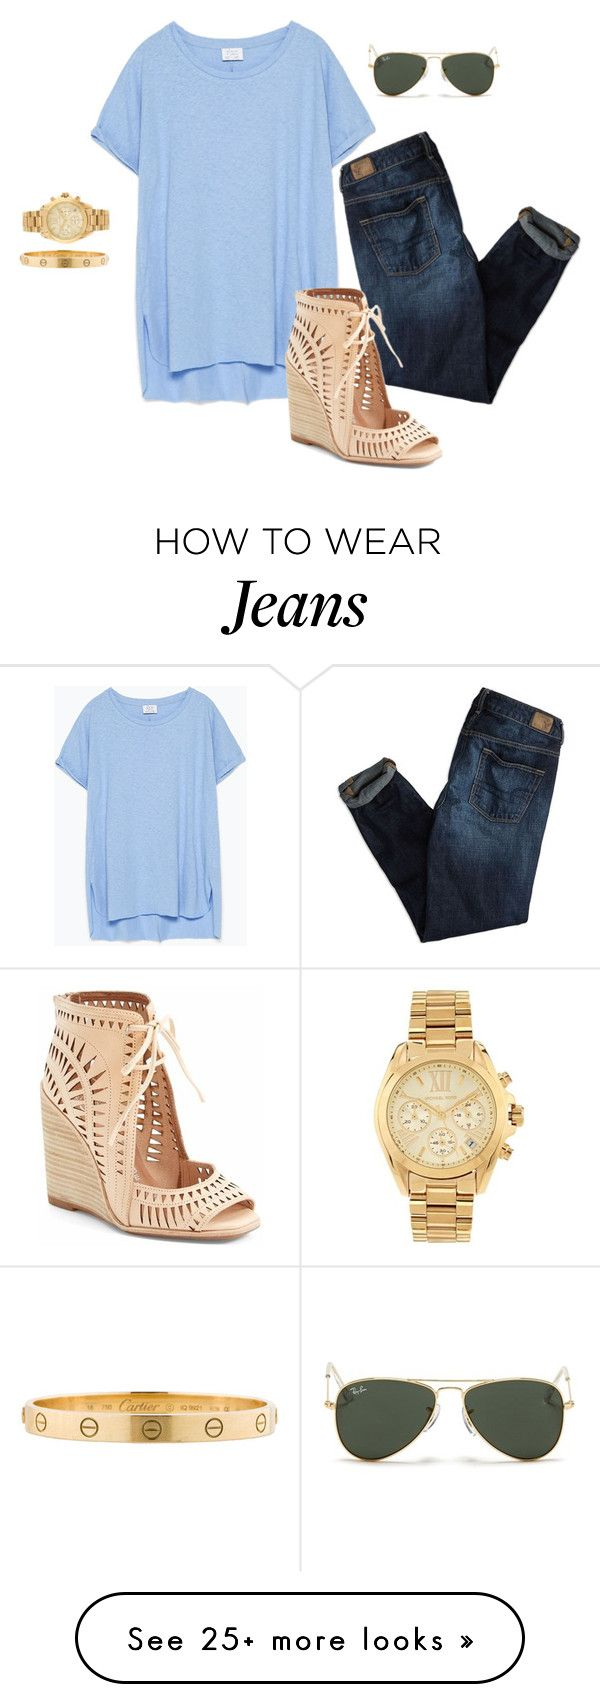 """""""White jeans would look cuter.."""" by mollykate3 on Polyvore featuring Zara, American Eagle Outfitters, Jeffrey Campbell, Cartier, Michael Kors and Ray-Ban"""